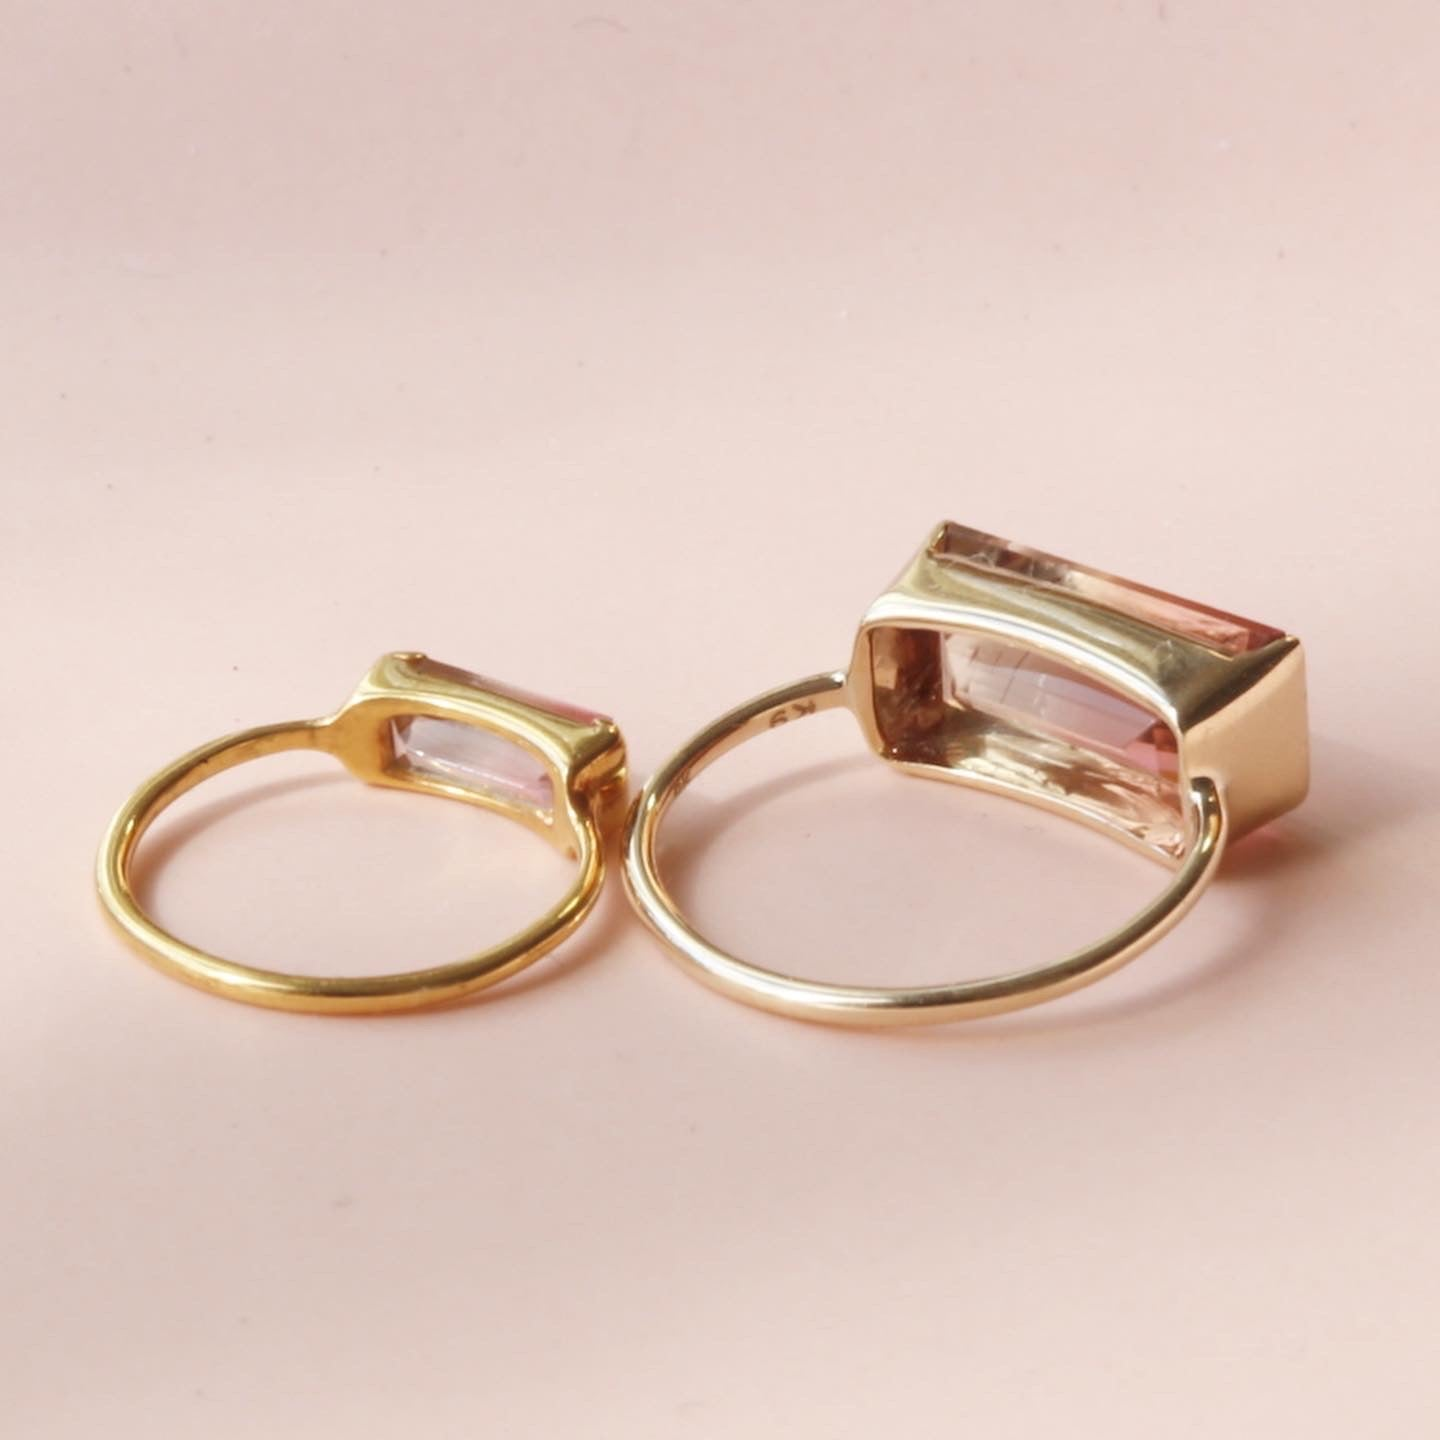 custtomer order<br>バイカラートルマリン<br>mom&baby ring